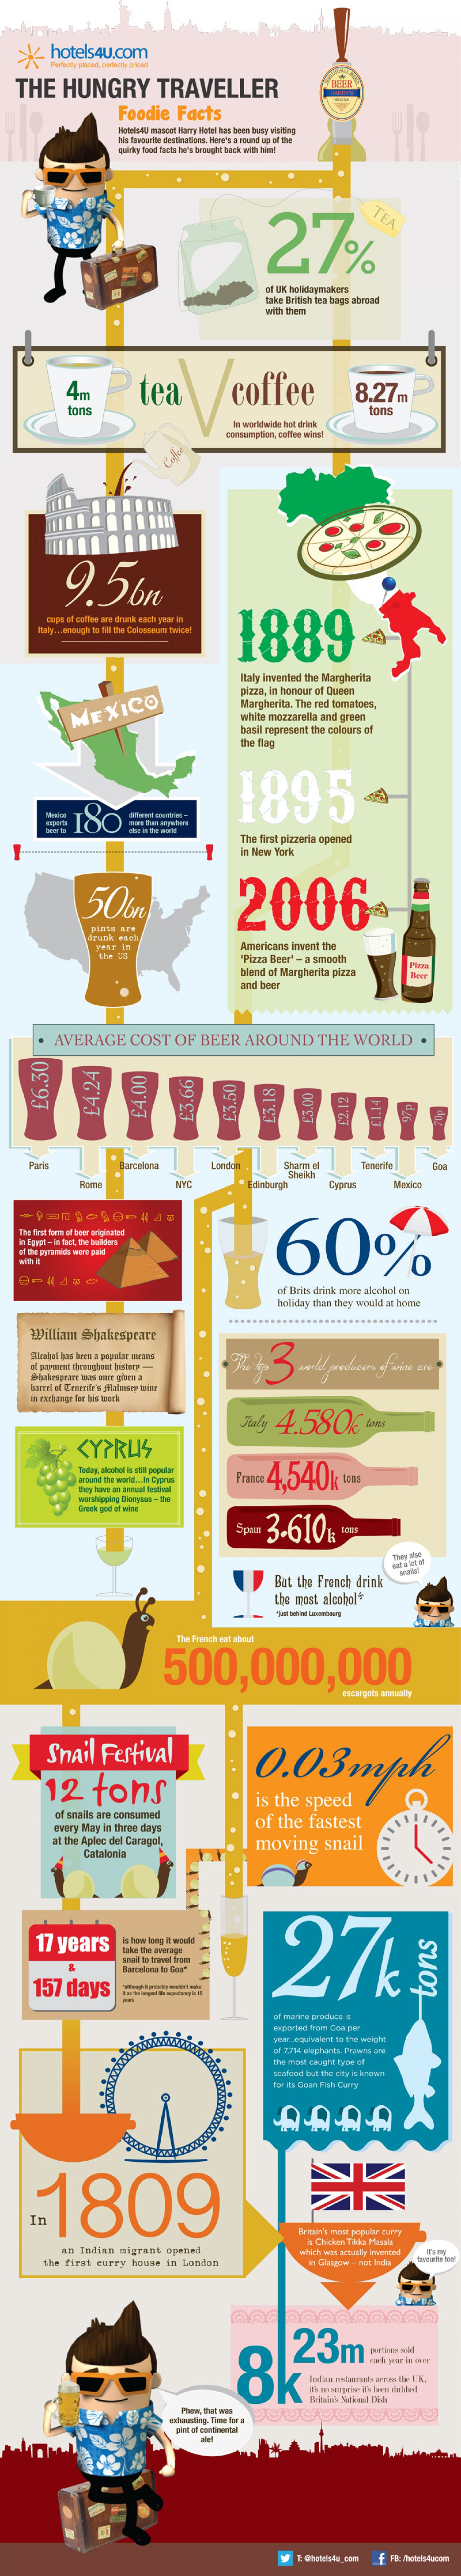 Hungry Traveller: Foodie Facts